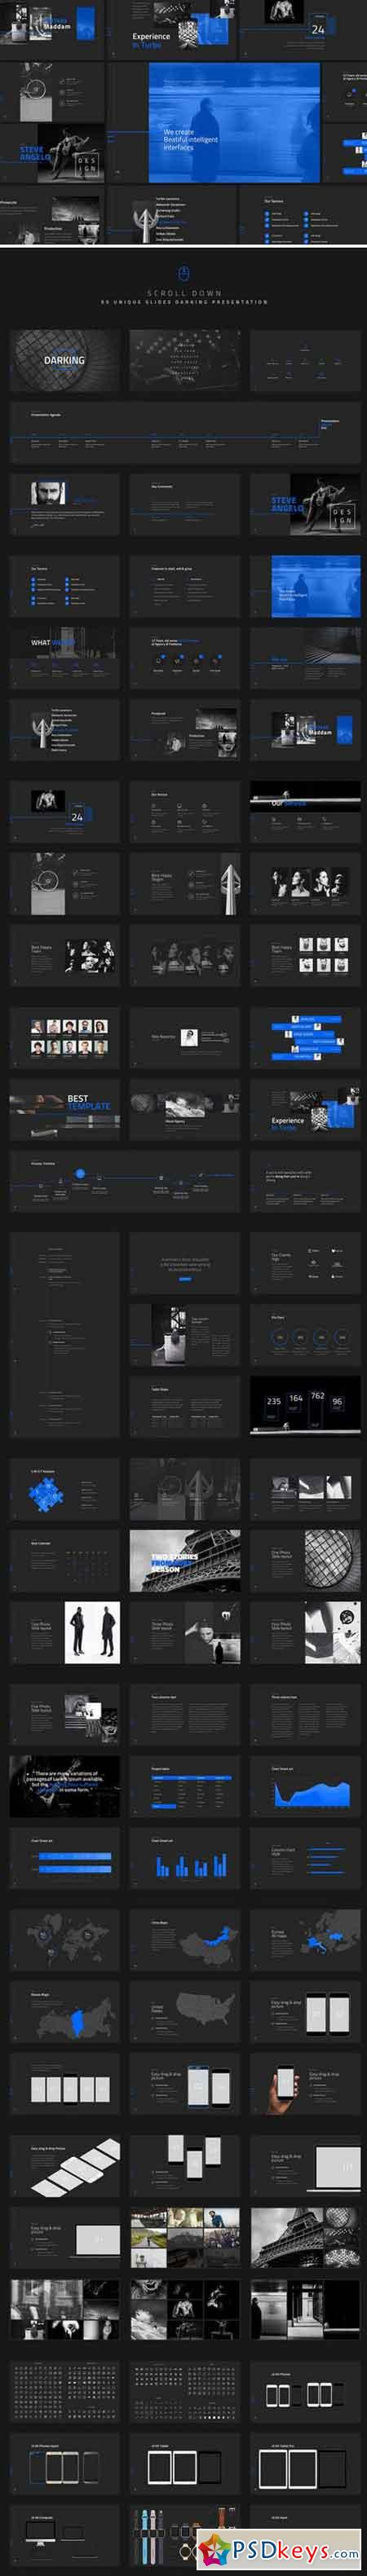 Darking-Minimal Powerpoint Template 929569